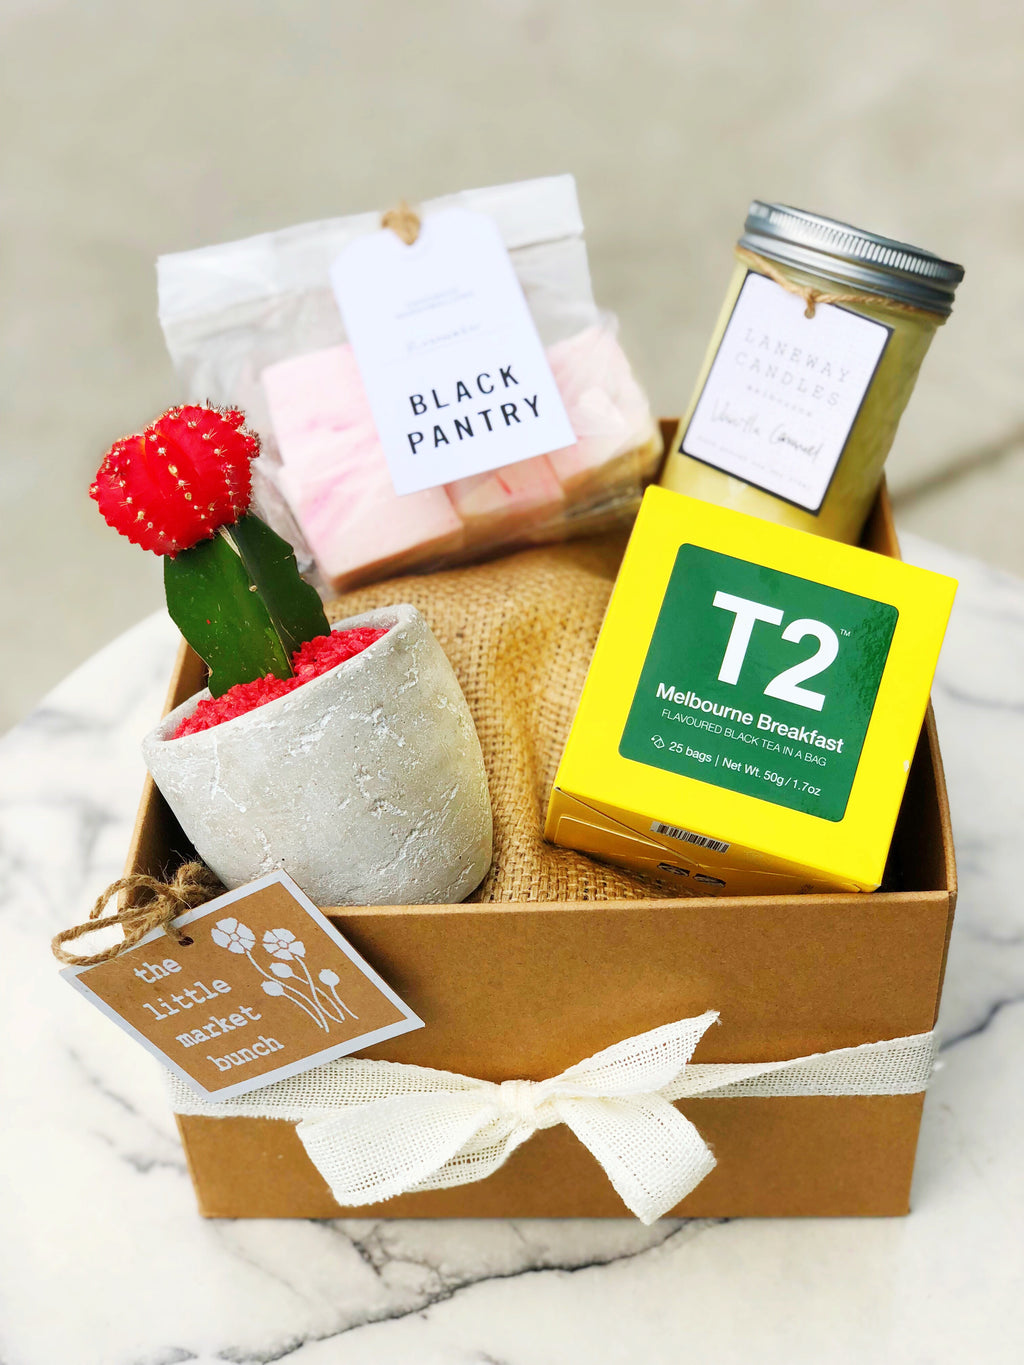 The little market bunch all star cactus gift box